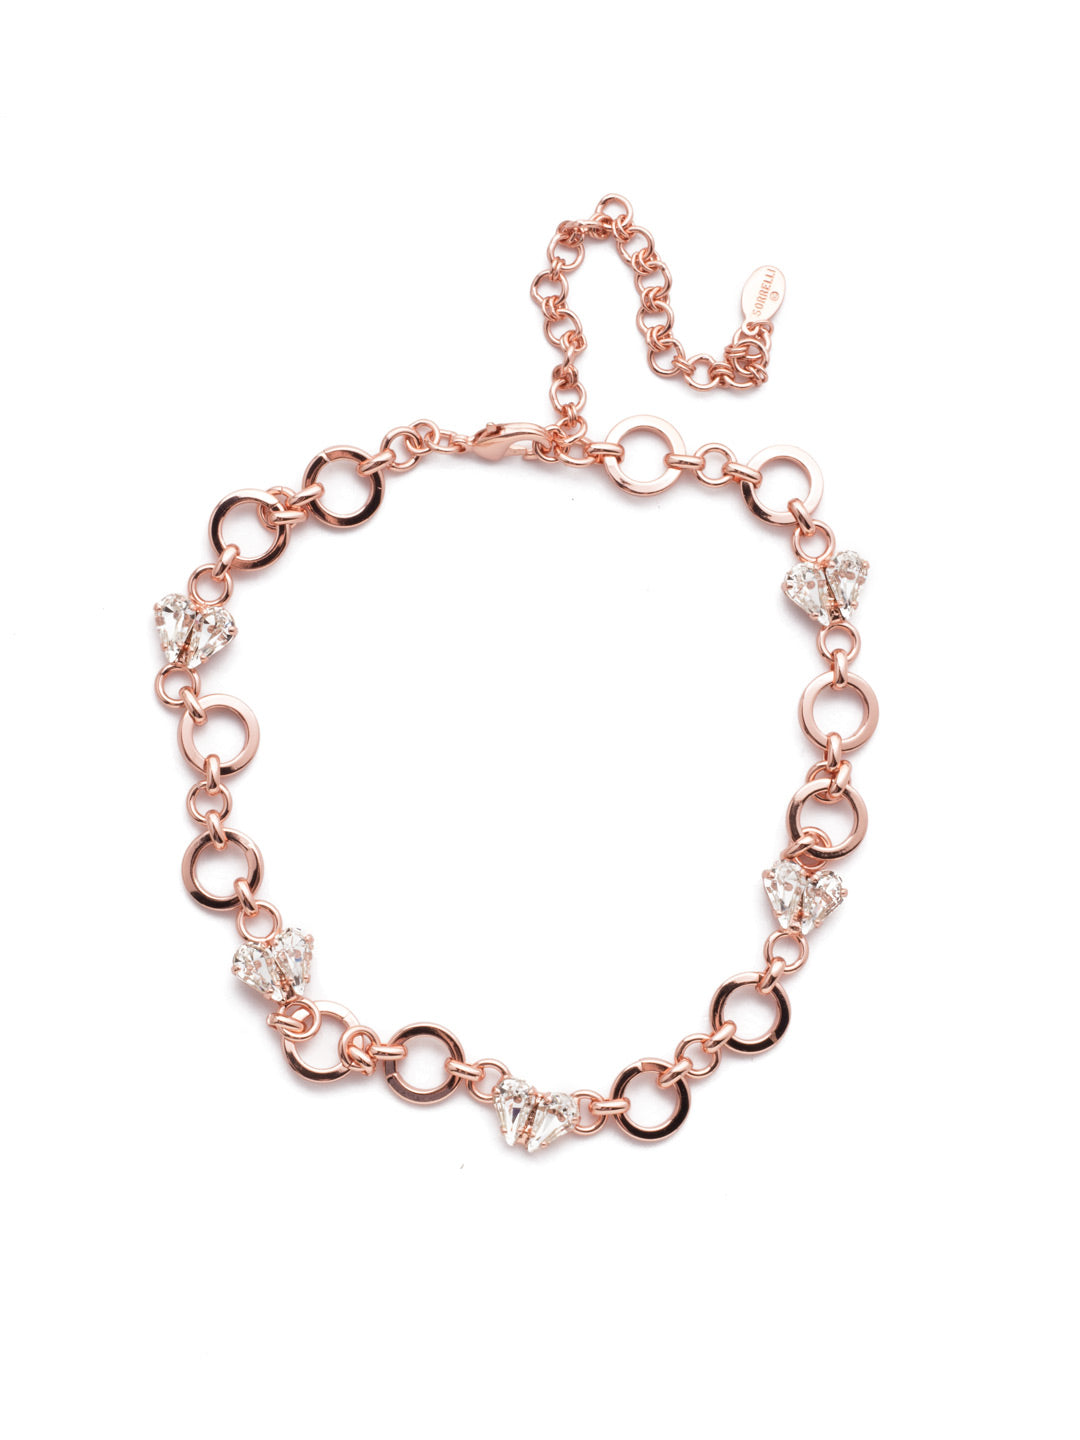 Marlowe Choker Necklace - NER4RGCRY